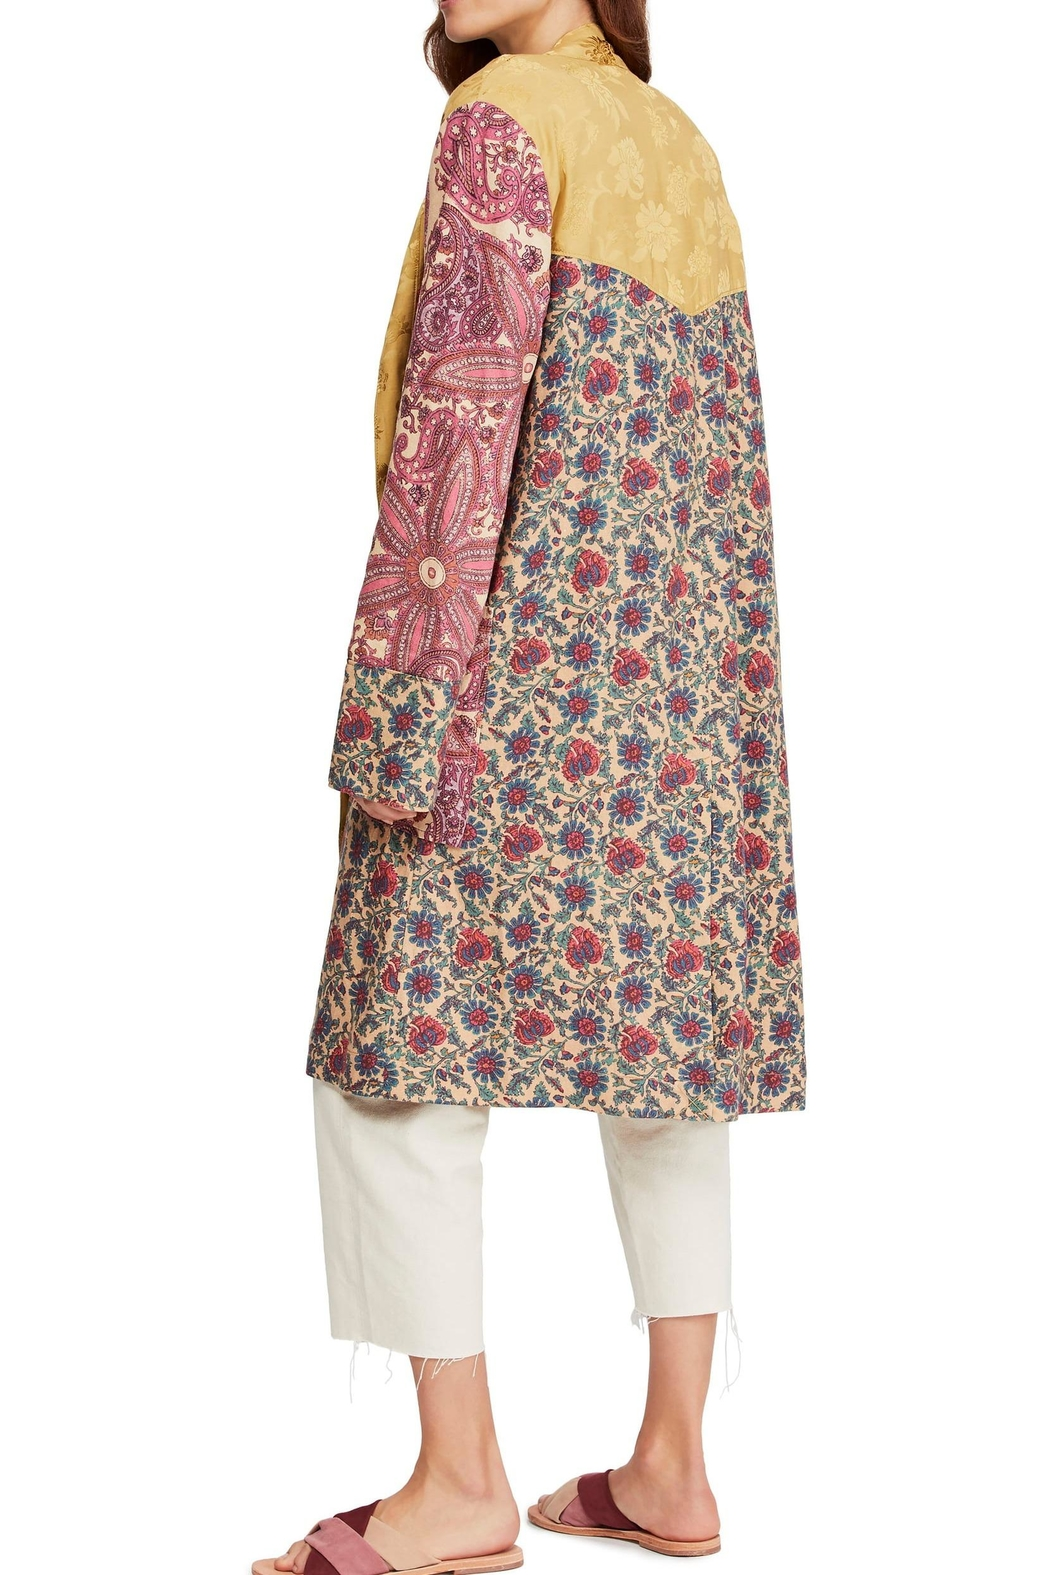 Free People Maggie Patchwork Duster - Front Full Image